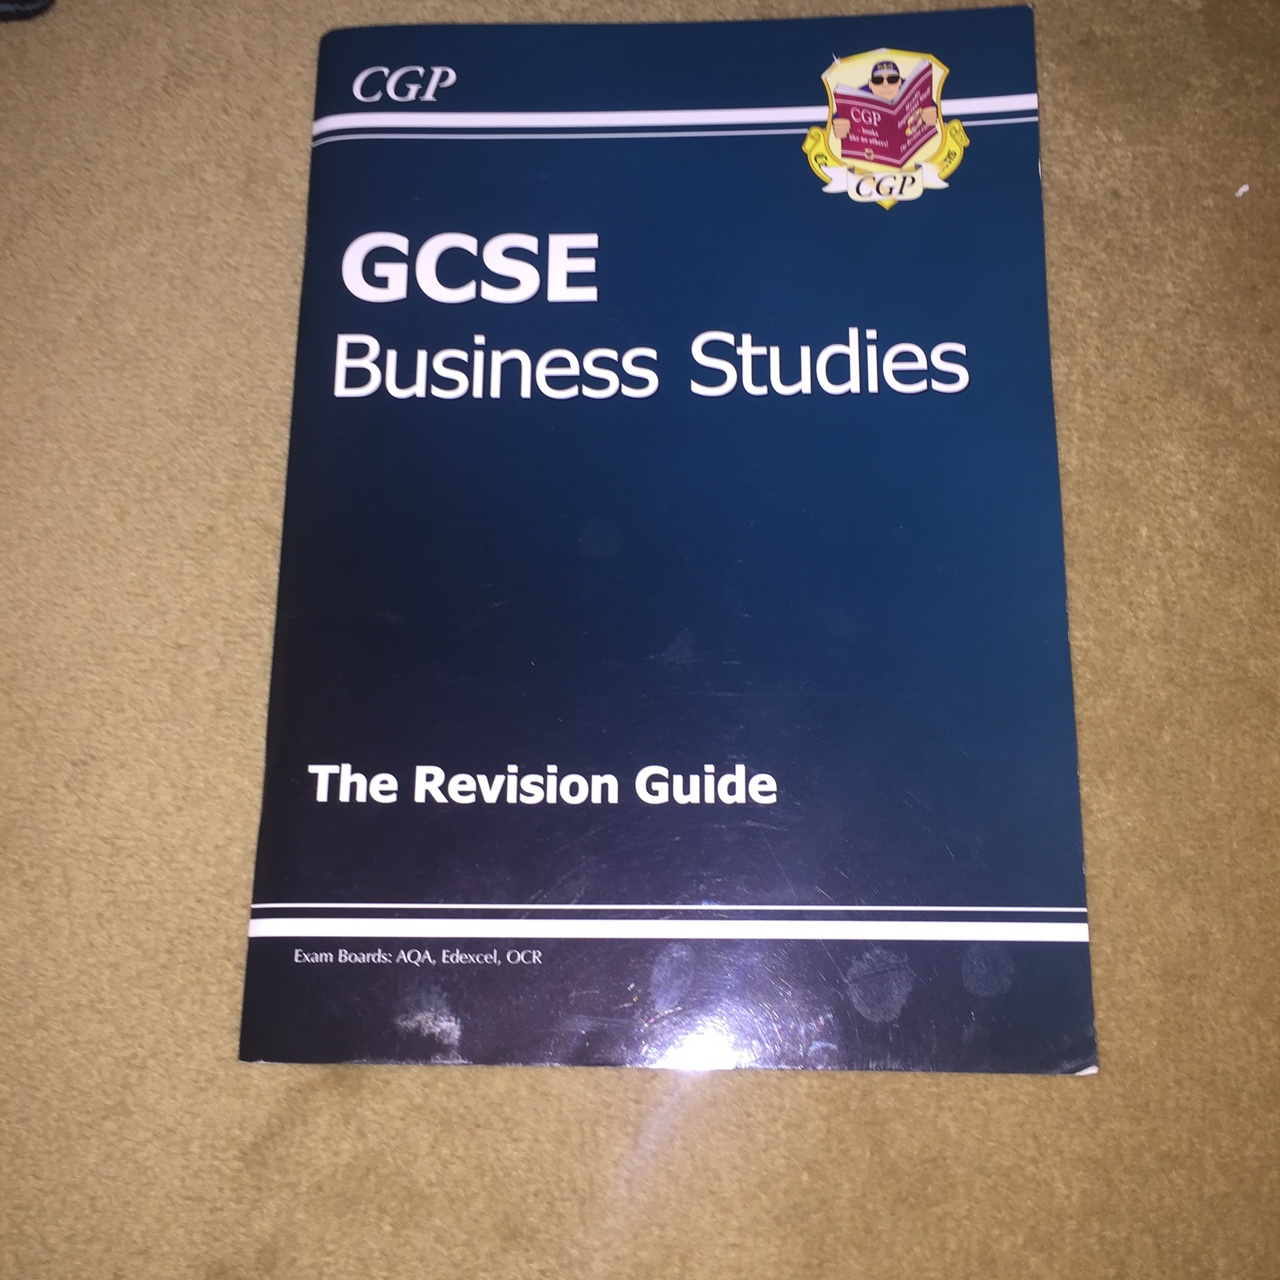 Gcse revision guide for business studies, with just    - Depop